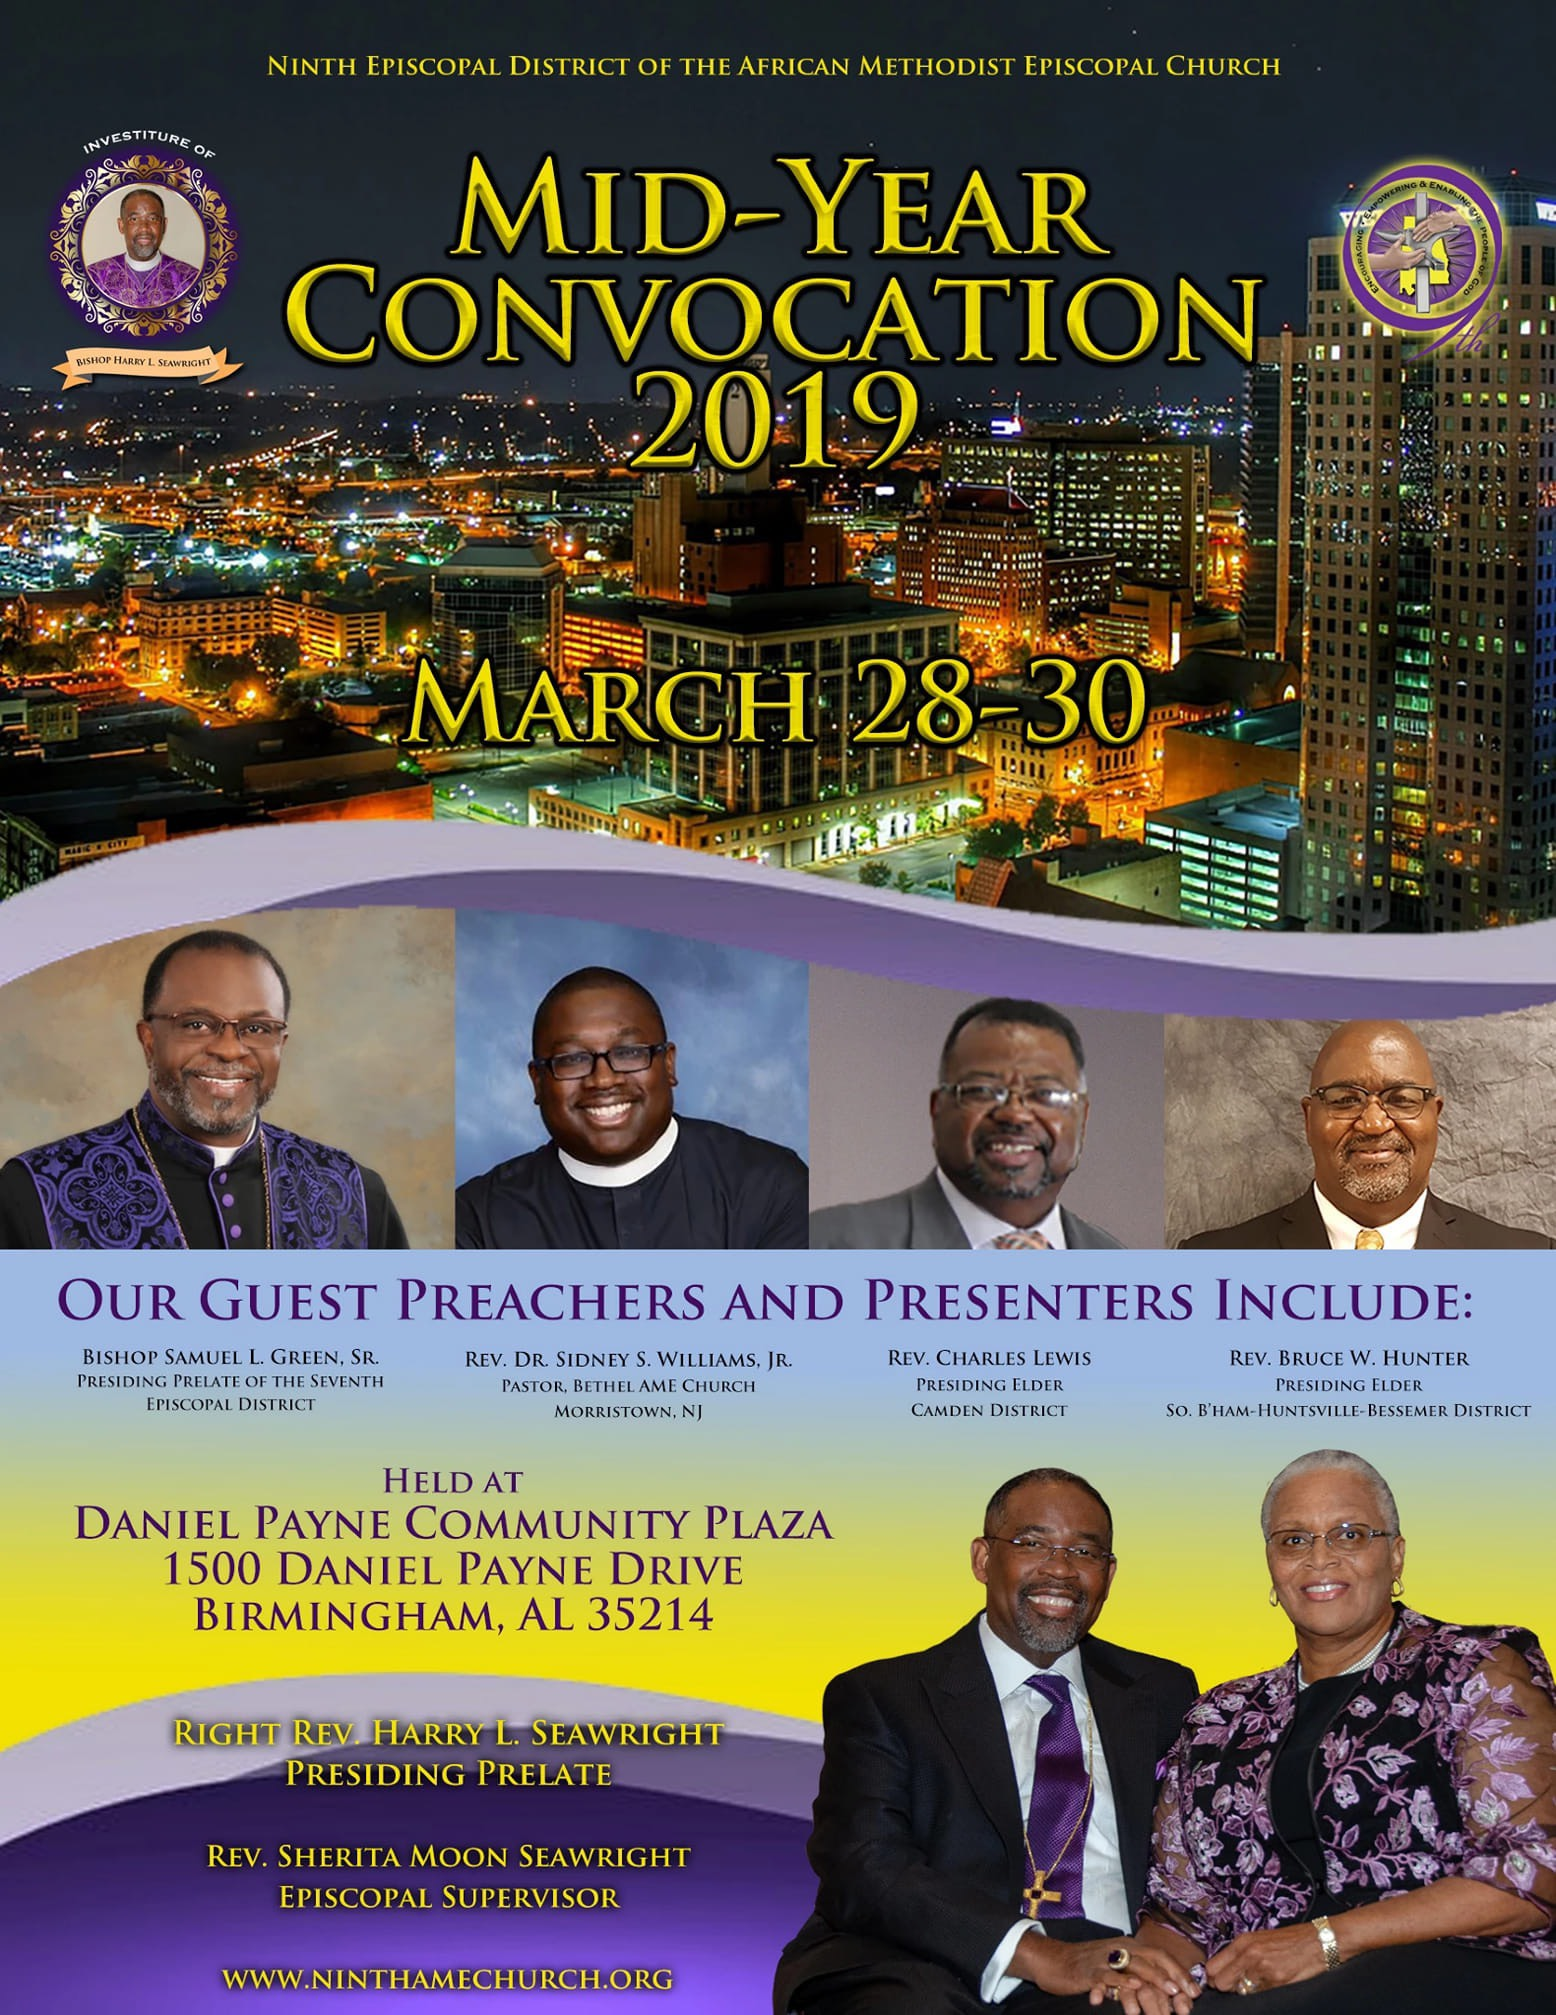 Sidney Williams Ninth Episcopal District of the African Methodist Episcopal Church Mid-Year Convocation 2019